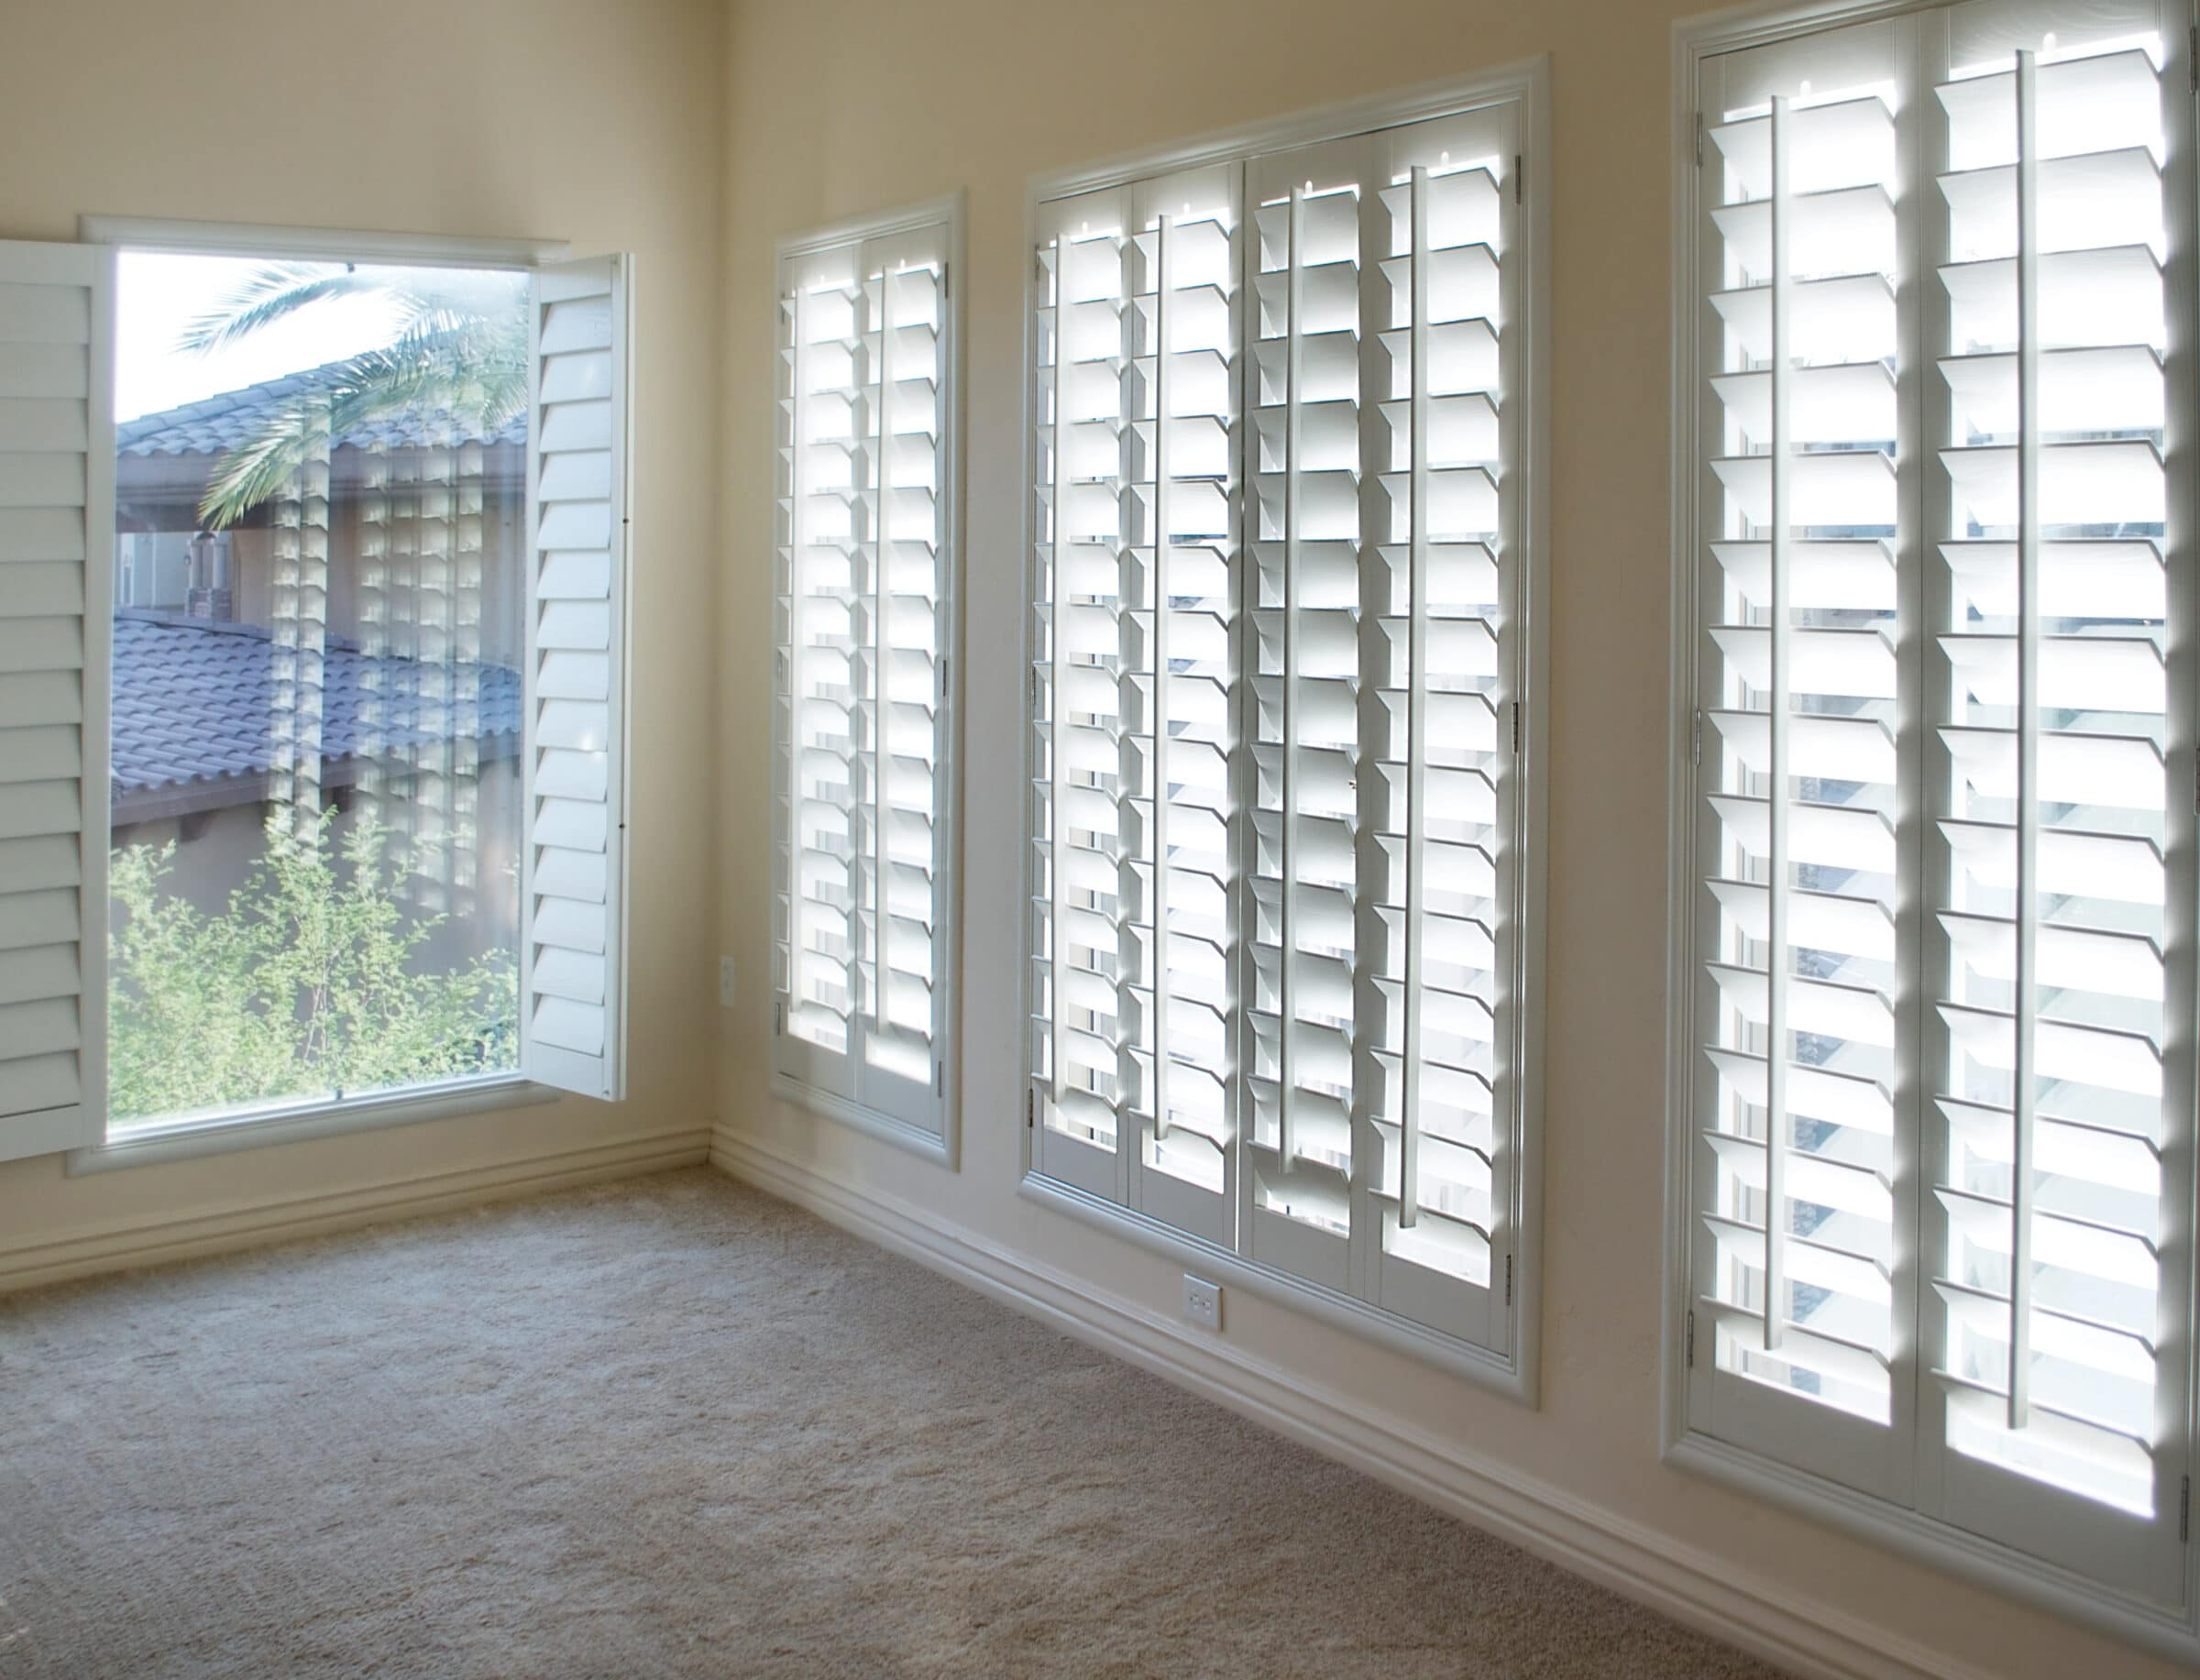 Shutters are energy efficient